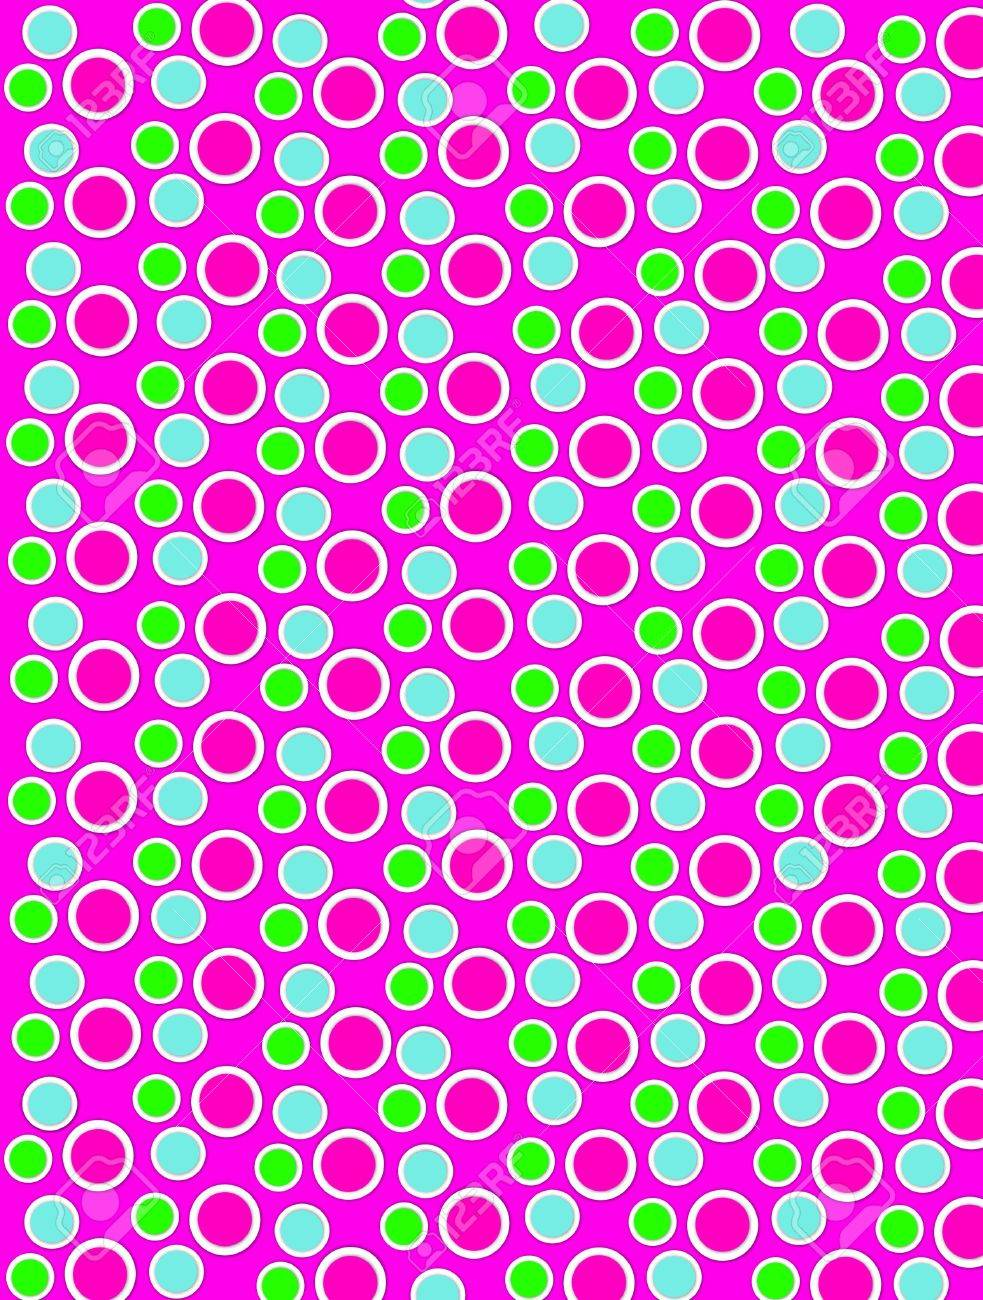 Background image is filled with two layered circles and dots.  White border encircles each polka dot.  Polka dots fill hot pink background. Stock Photo - 17126723